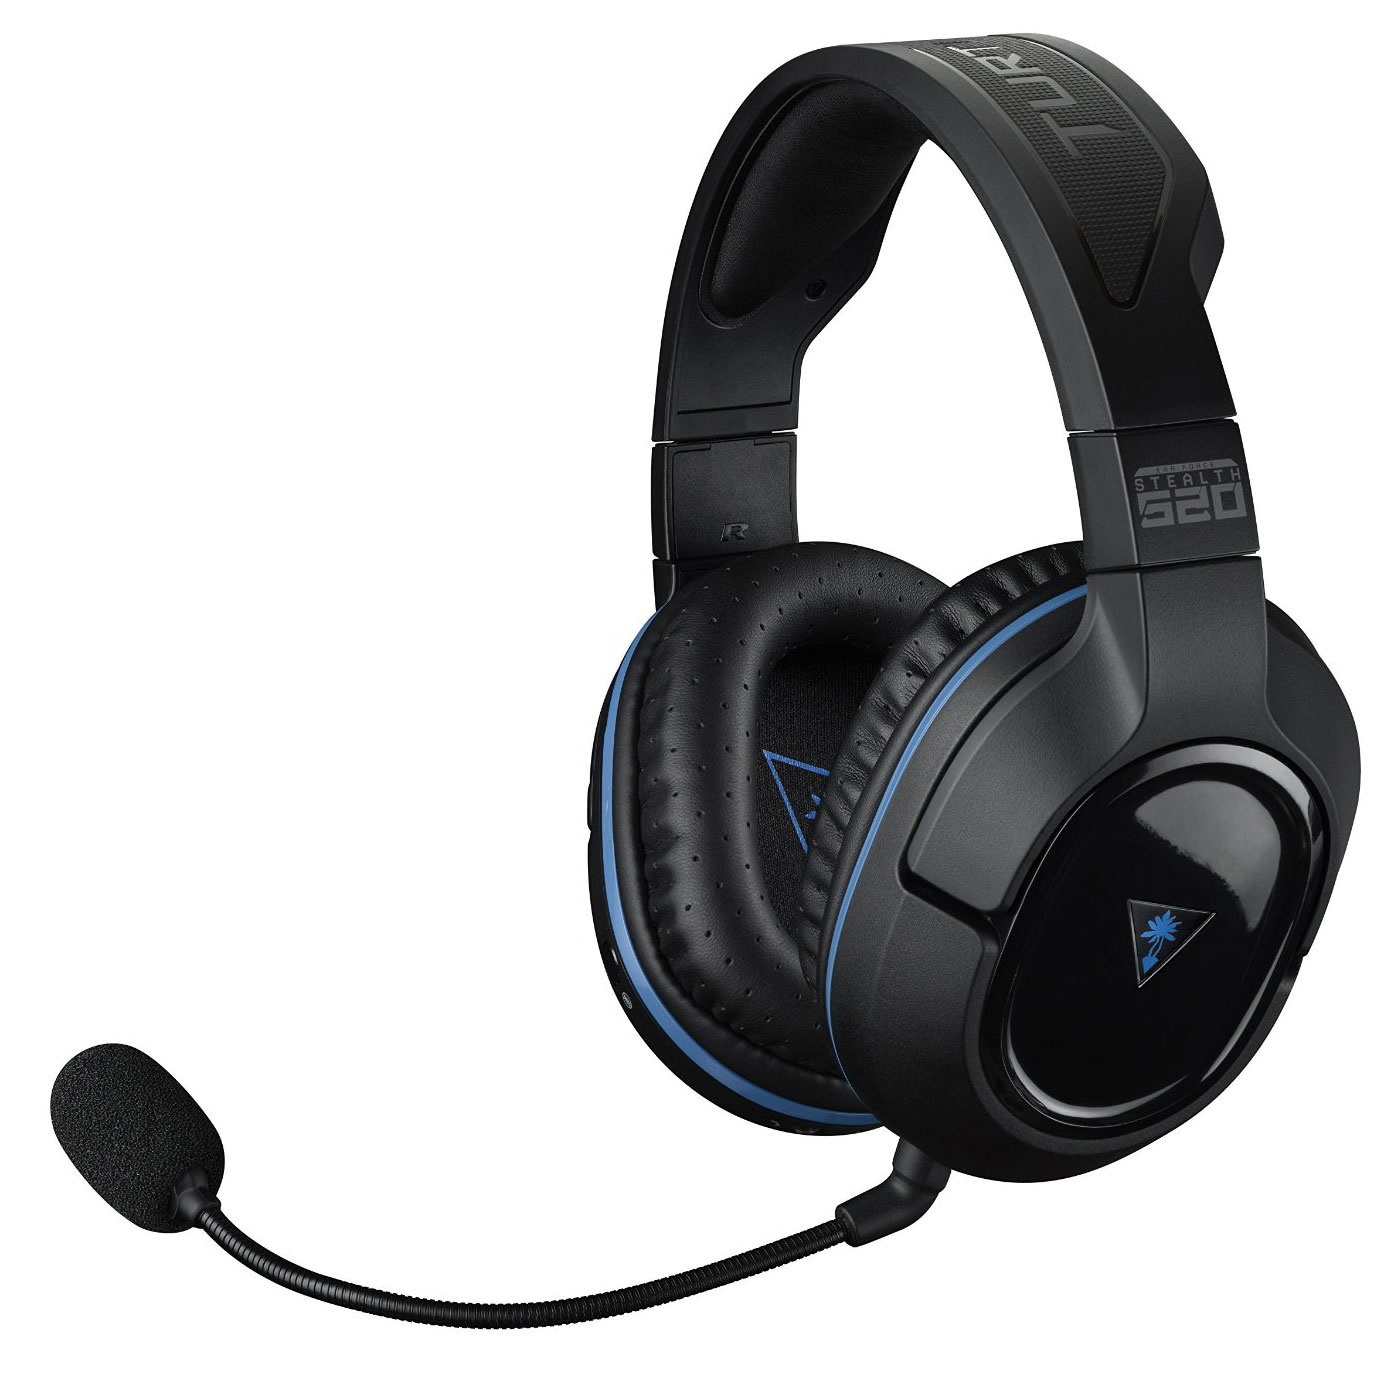 Turtle Beach Ear Force Stealth 520 Wireless 7.1 Surround Gaming Headset  Fekete Kék 7e91f8d64a